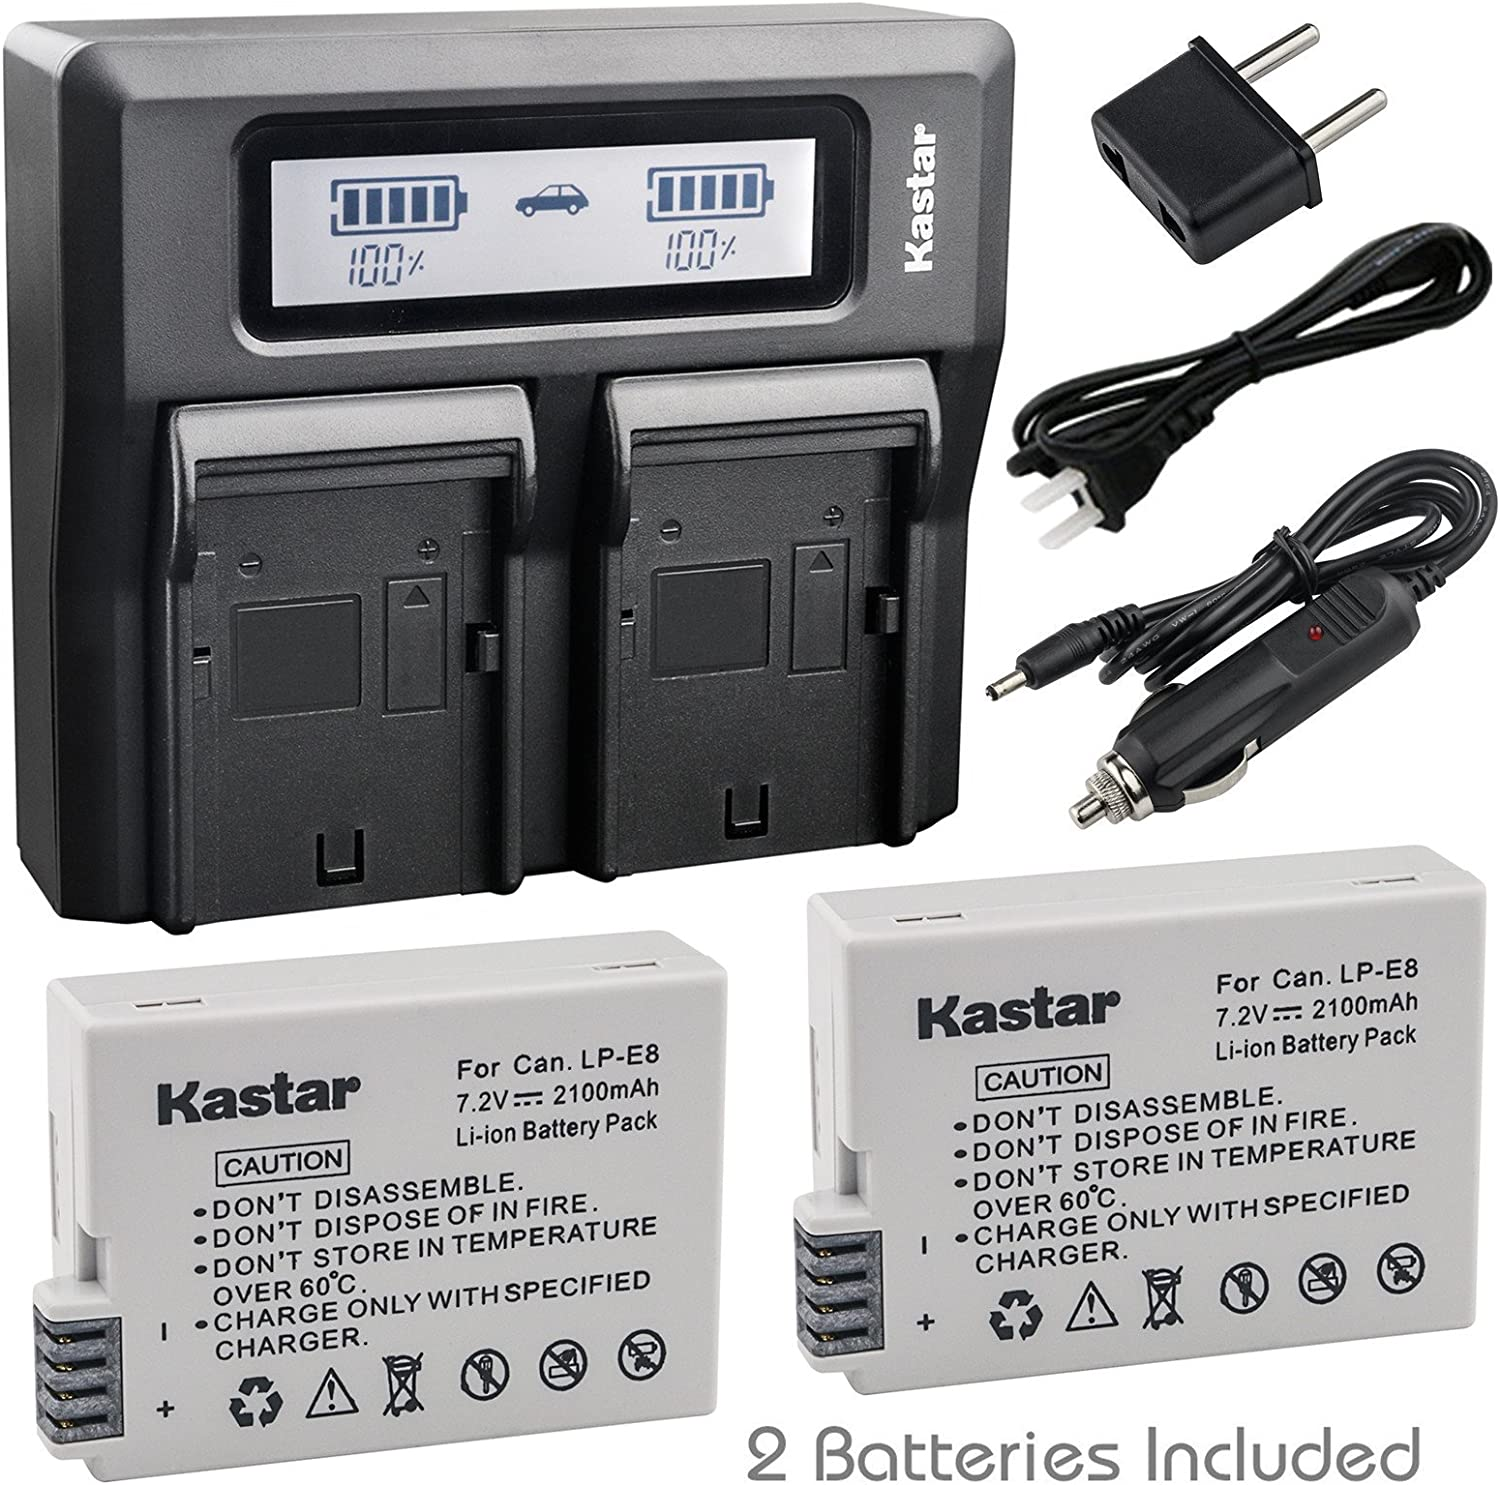 : Kastar Fast Dual LCD Charger + 2X Battery for